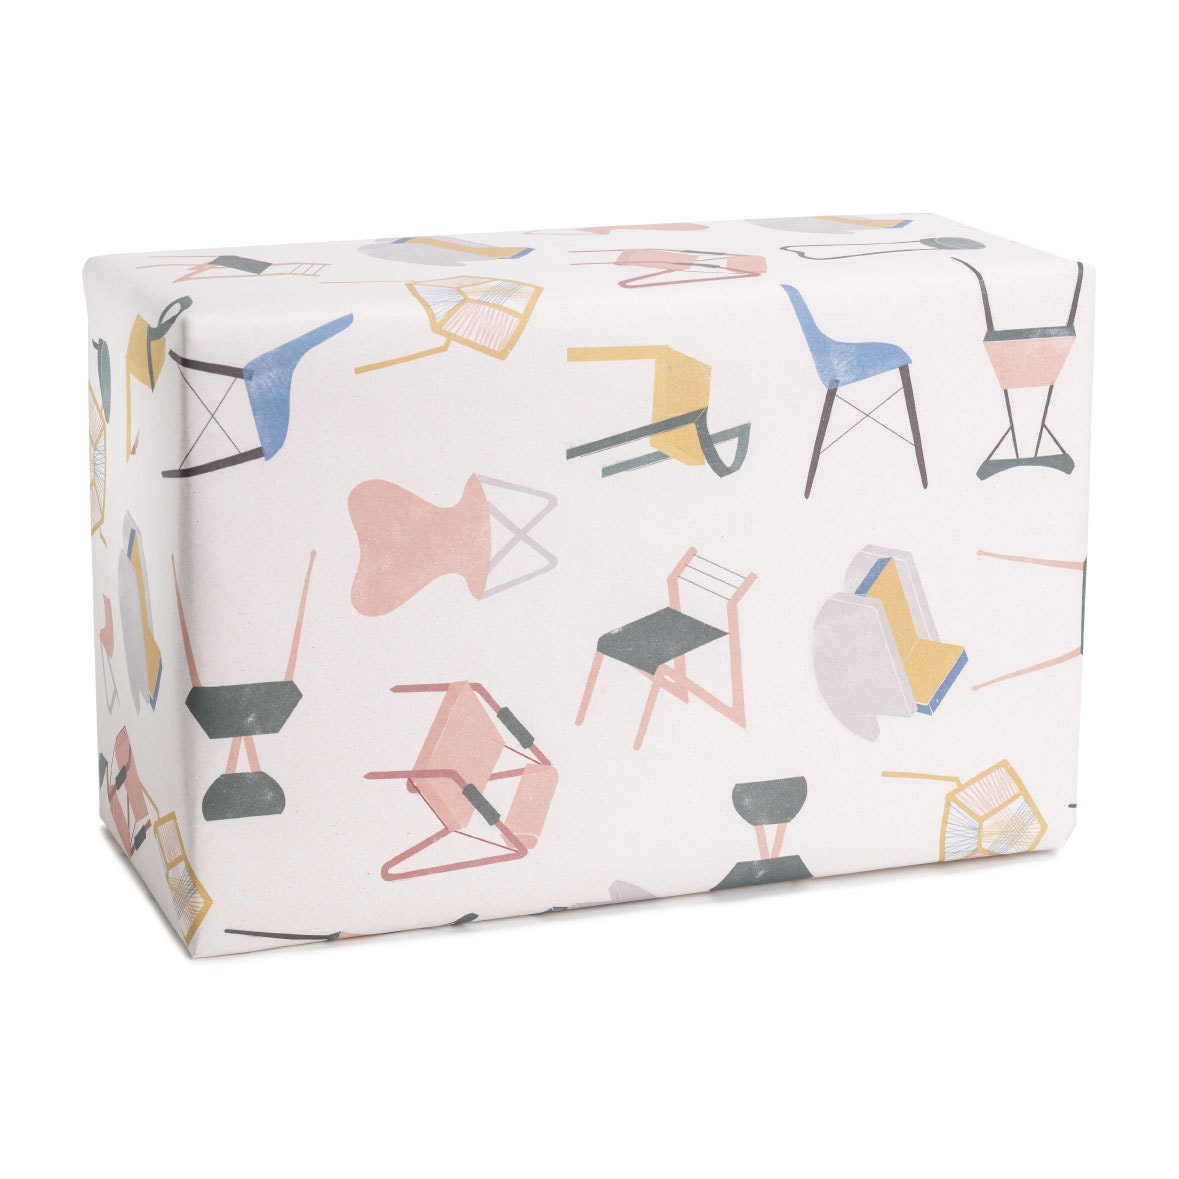 Wrapping paper minimalist style for design lovers for Minimalist gifts for housewarming